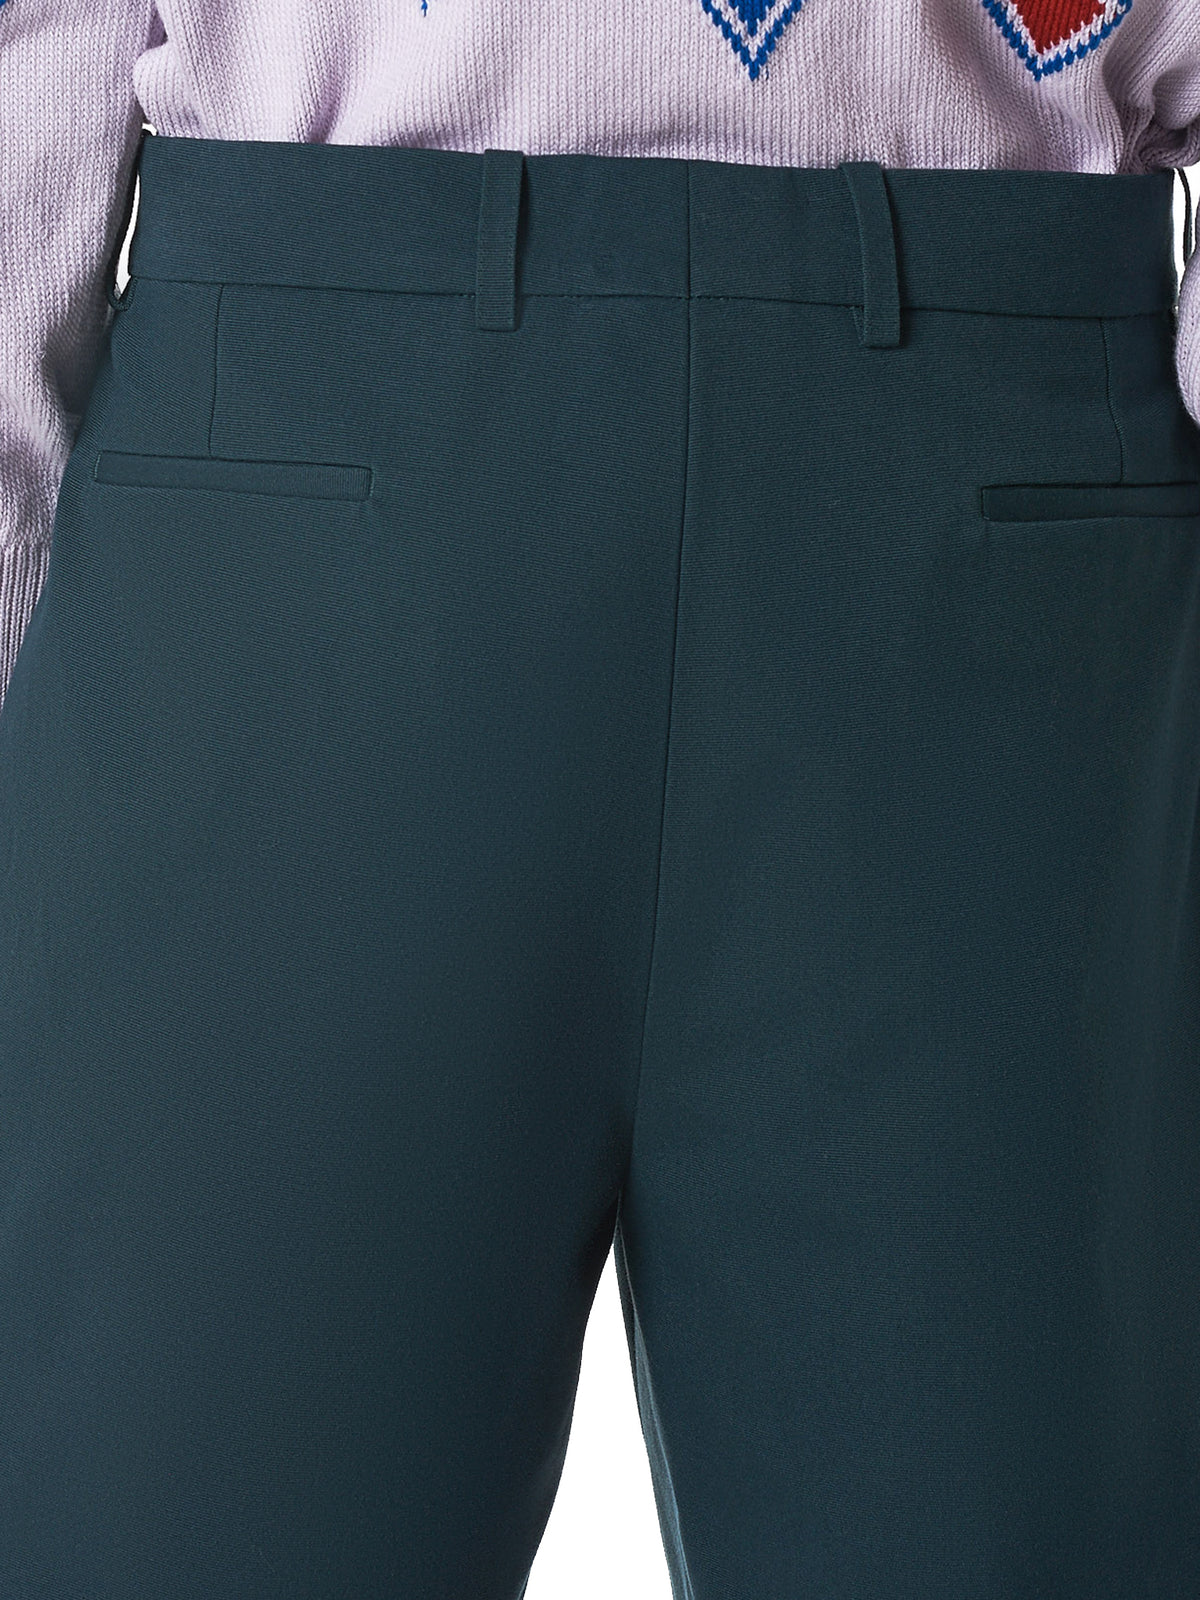 'Hesene' Shorts (0902-FOREST-GREEN)